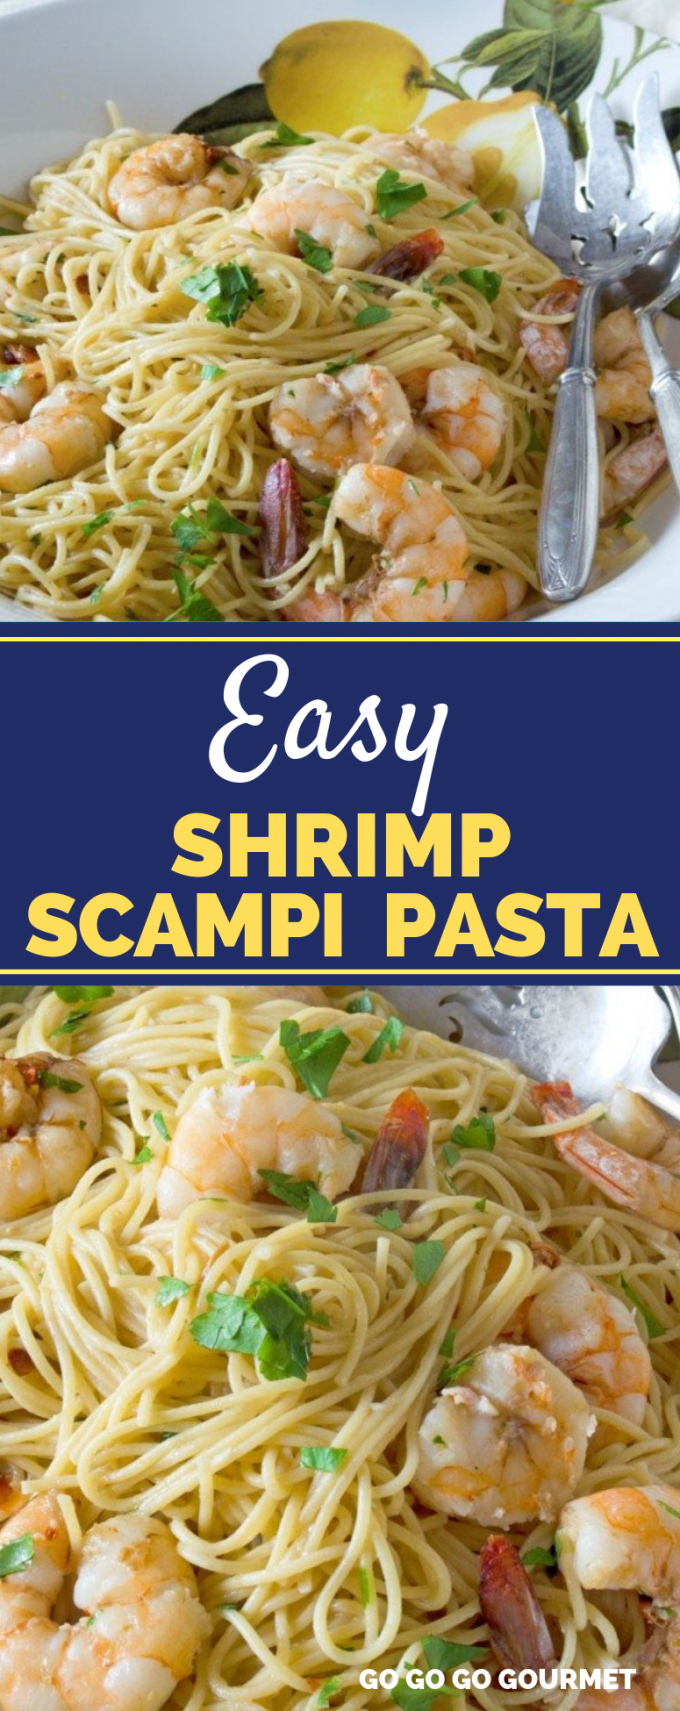 This easy Shrimp Scampi recipe is perfect if you're craving pasta for dinner! With ingredients like garlic, lemon and white wine, it just can't be beat! #gogogogourmet #shrimpscampi #easyshrimpscampi #pastarecipes #easydinners via @gogogogourmet